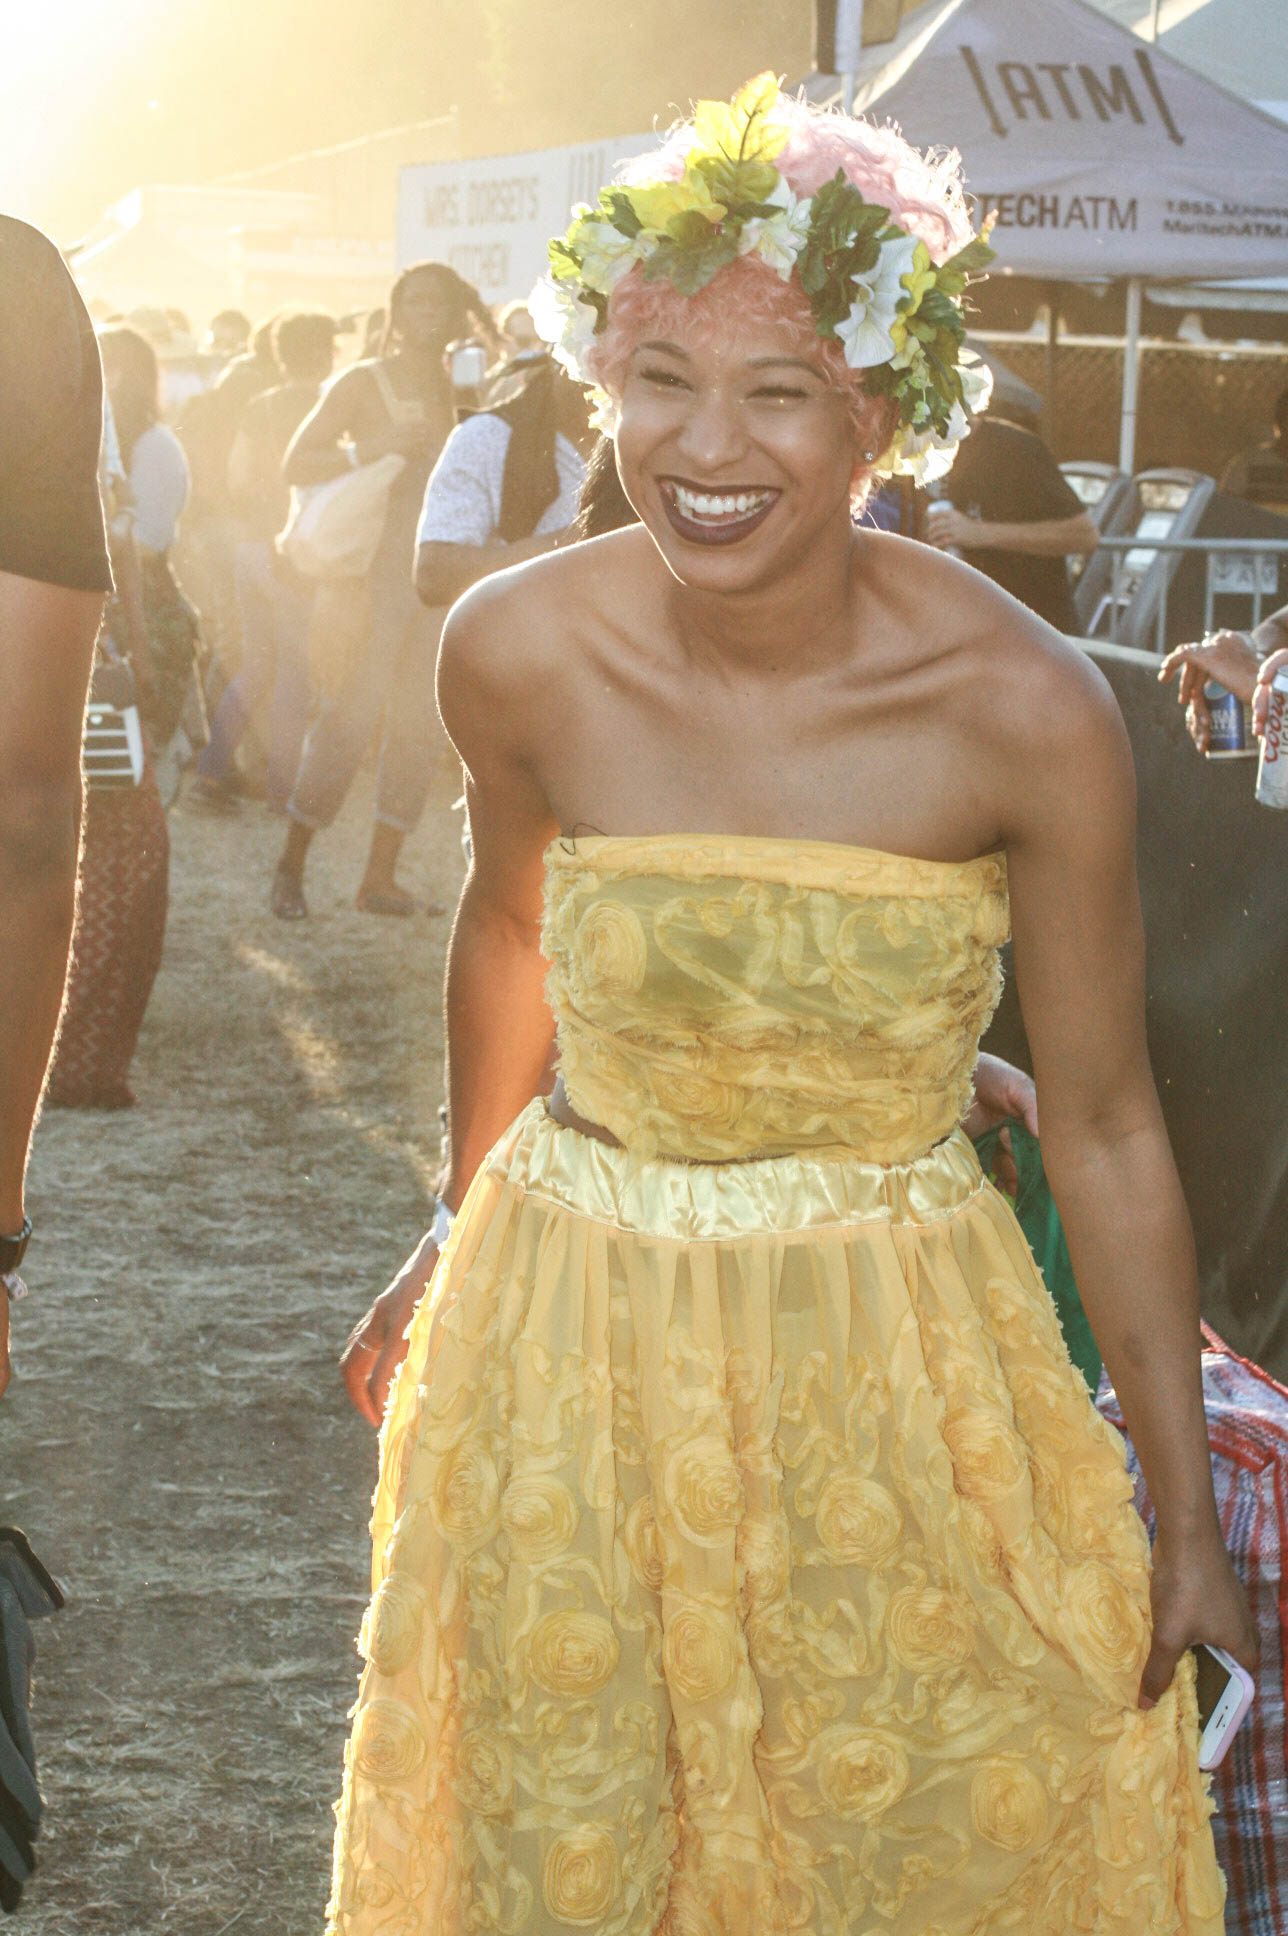 @skye at #afropunkfest .